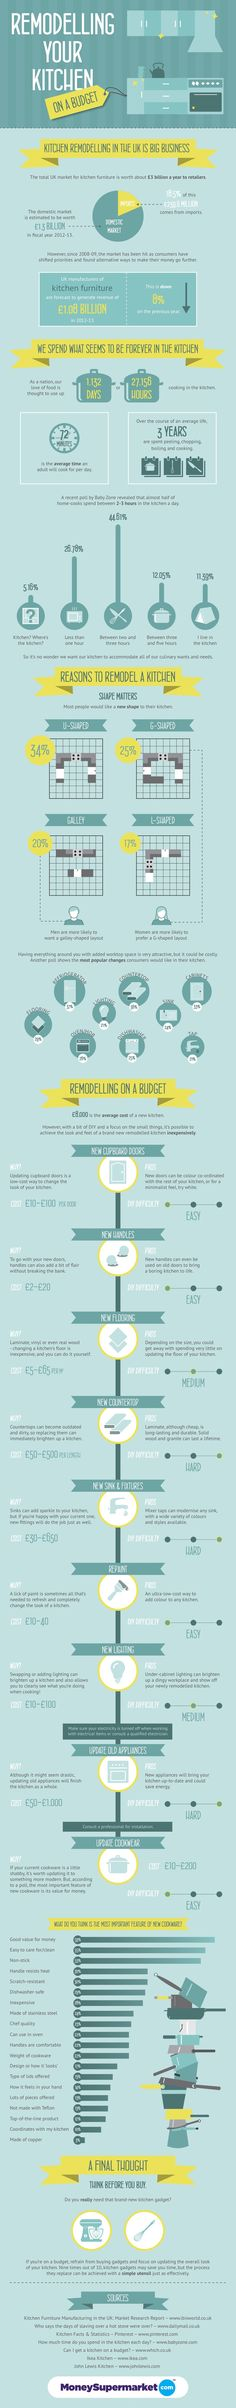 Remodeling Your Kitchen on a Budget [Infographic]